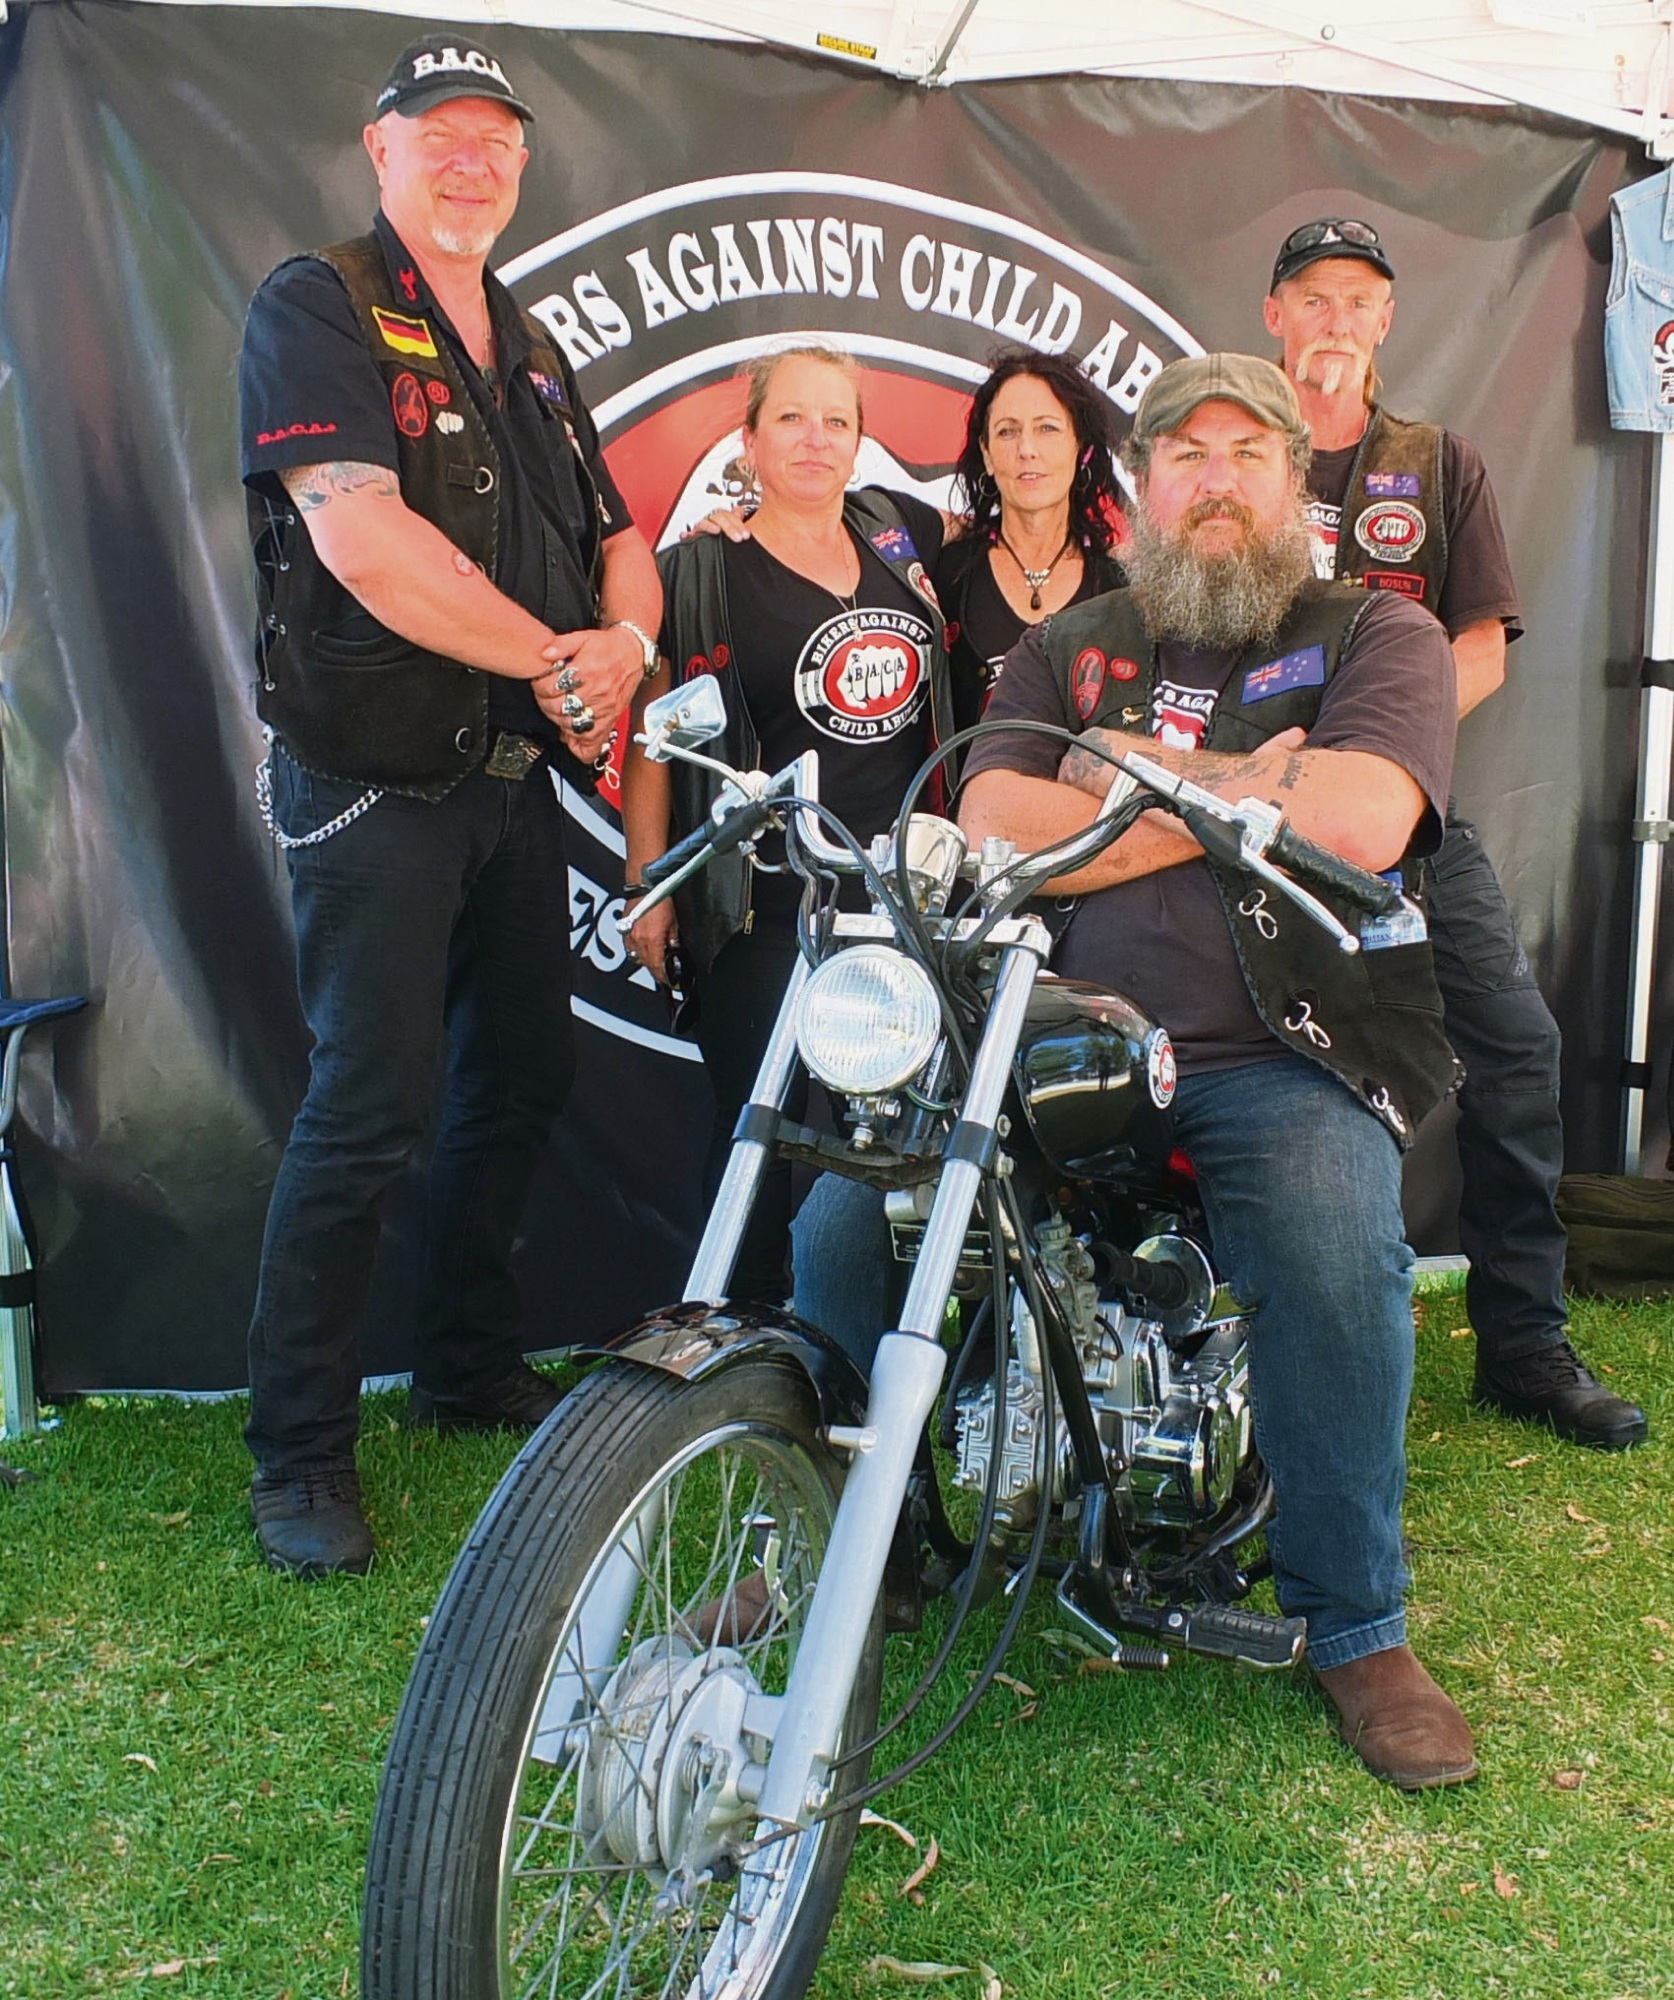 BACA members at a stall at the Wanneroo Show. Pictured standing from left, are Dutch, Bootz, Staplz and Bosun, with Chib on a small motorbike.